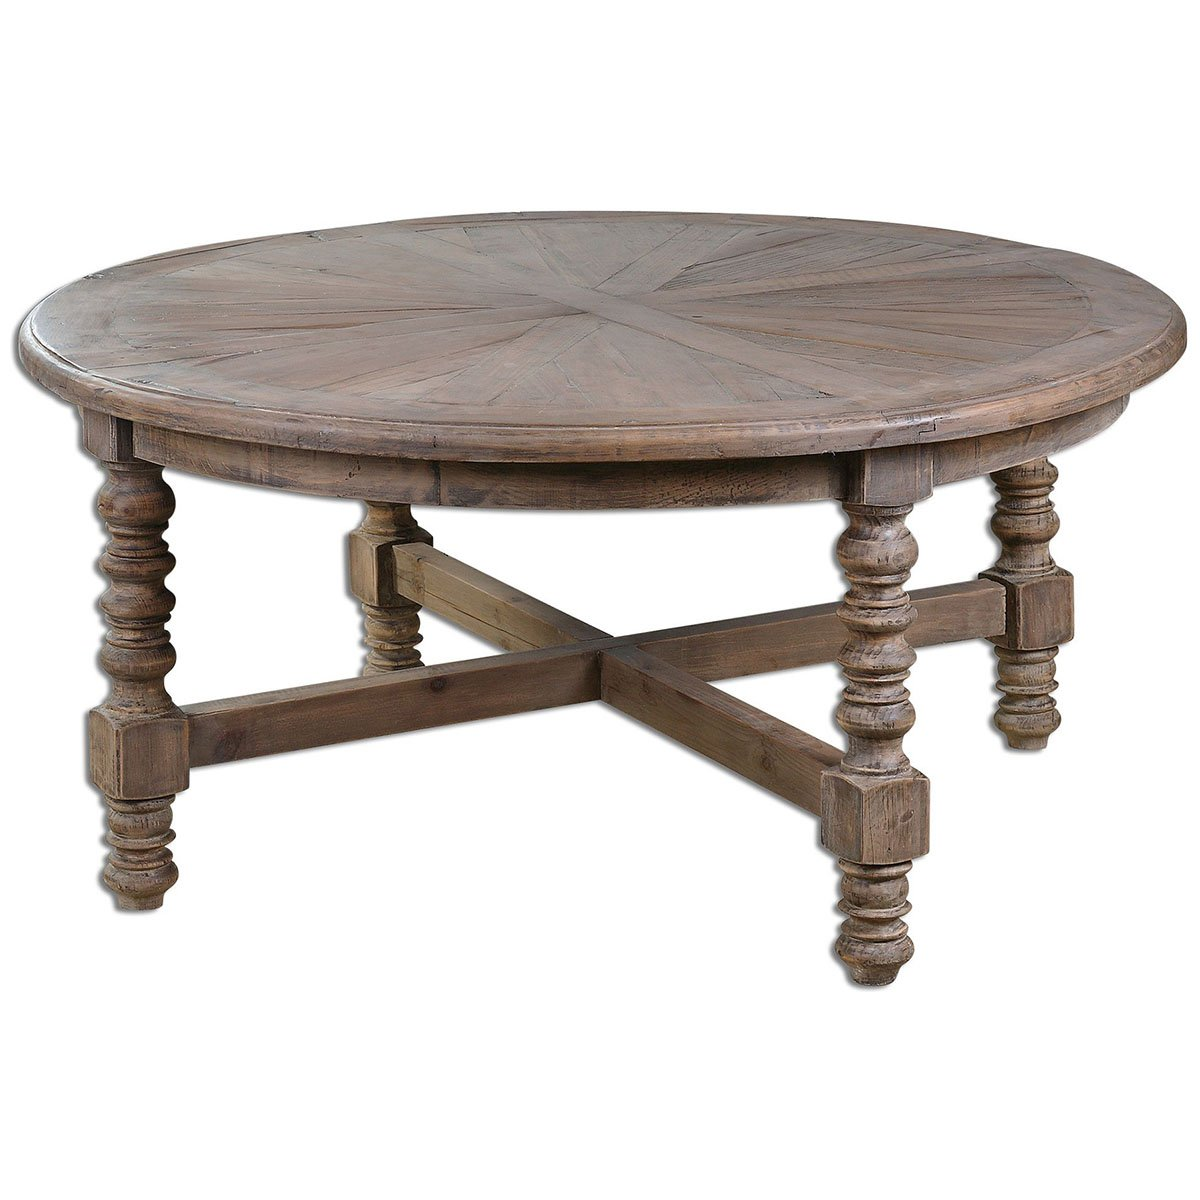 Amazon uttermost 24345 samuelle wooden coffee table kitchen amazon uttermost 24345 samuelle wooden coffee table kitchen dining geotapseo Images